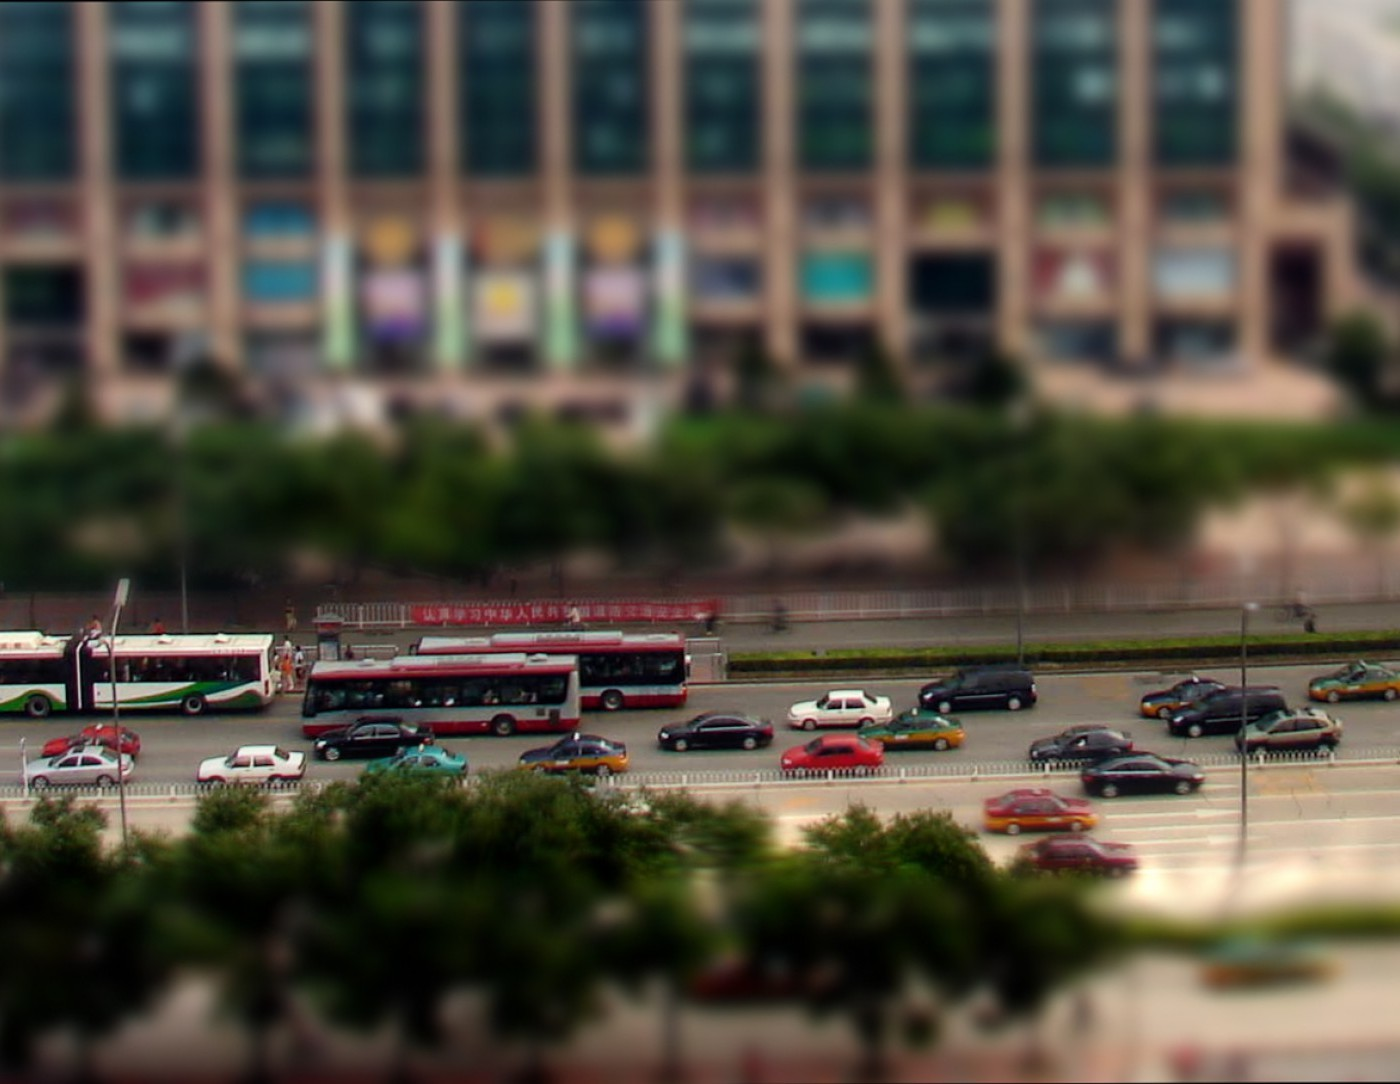 Perspective View of Driverless Cars in Beijing